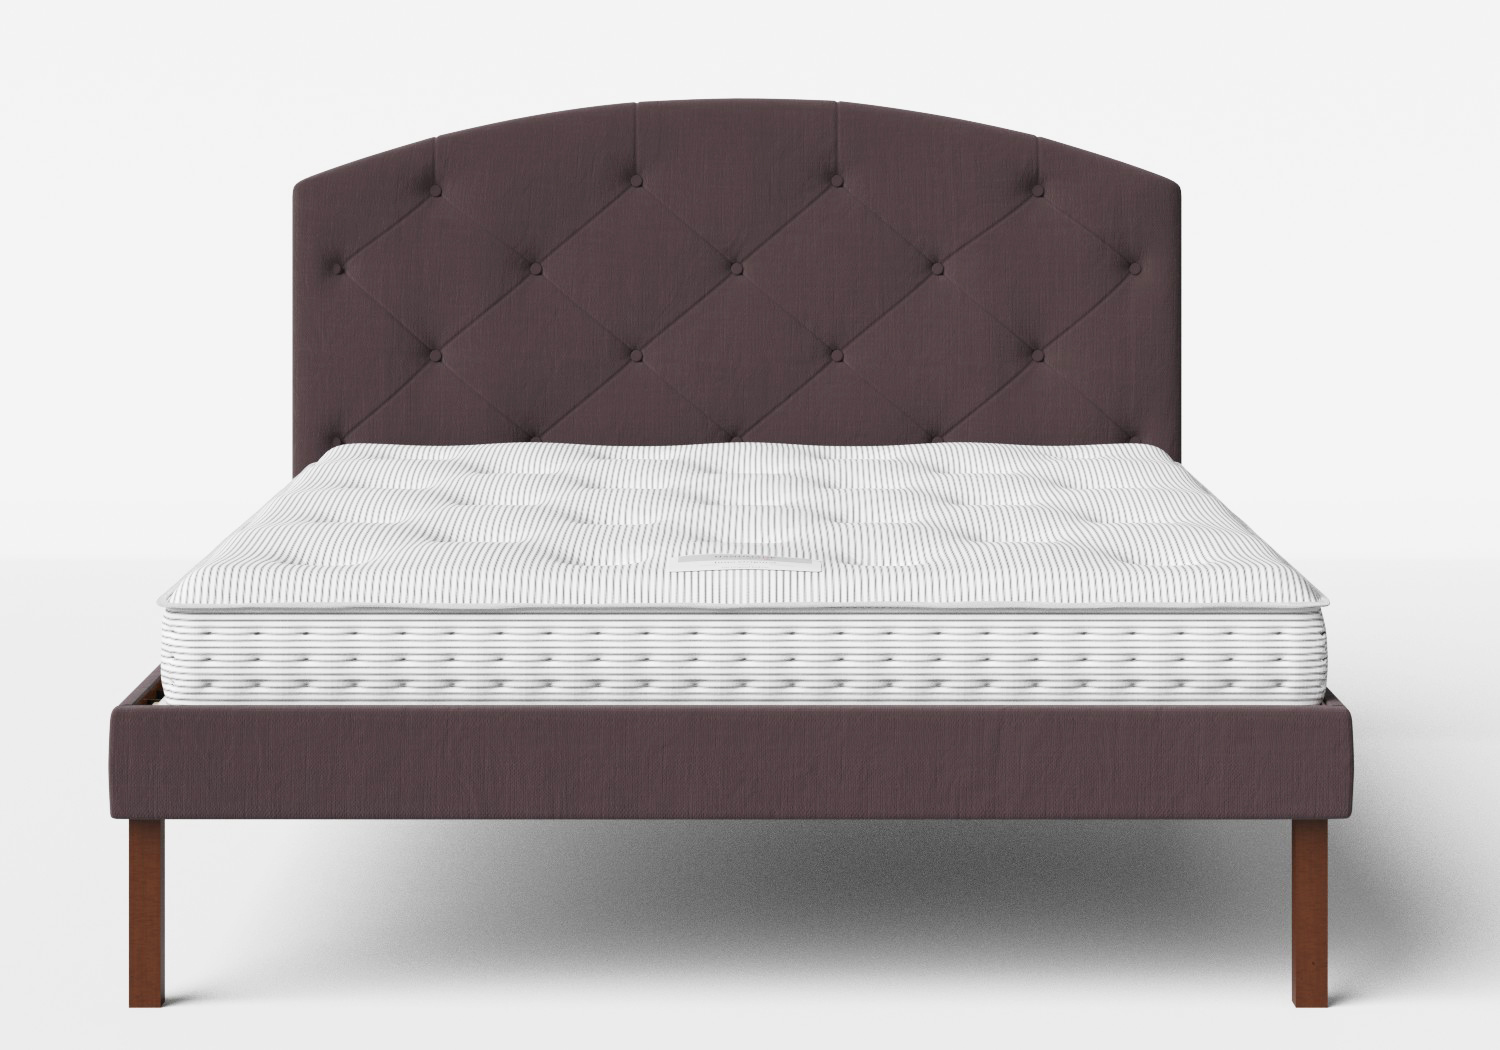 Okawa Upholstered Bed in Aubergine fabric with buttoning shown with Juno 1 mattress